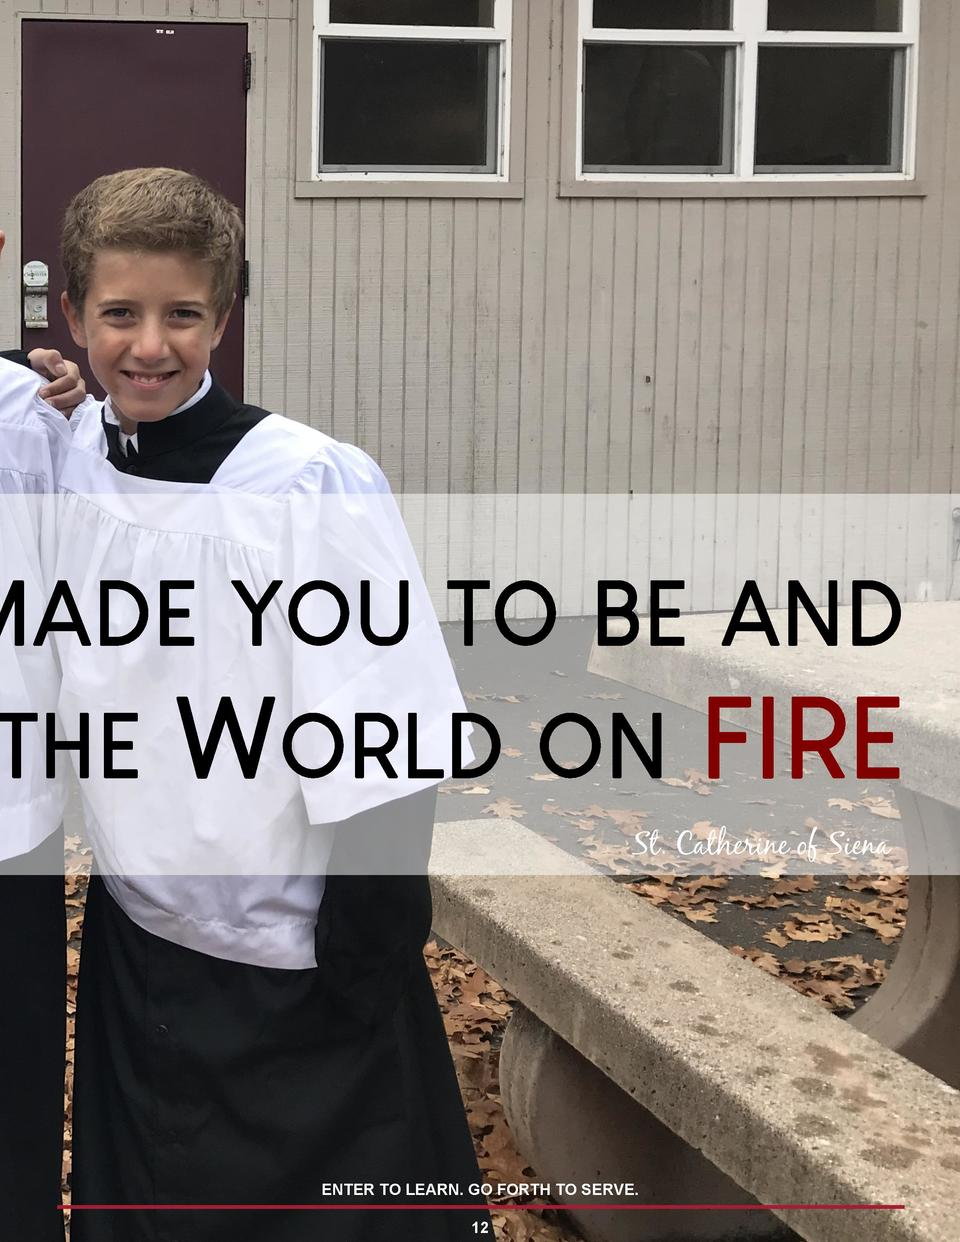 MADE YOU TO BE AND  THE  WORLD  ON  FIRE  St. Catherine of Siena  ENTER TO LEARN. GO FORTH TO SERVE. 12